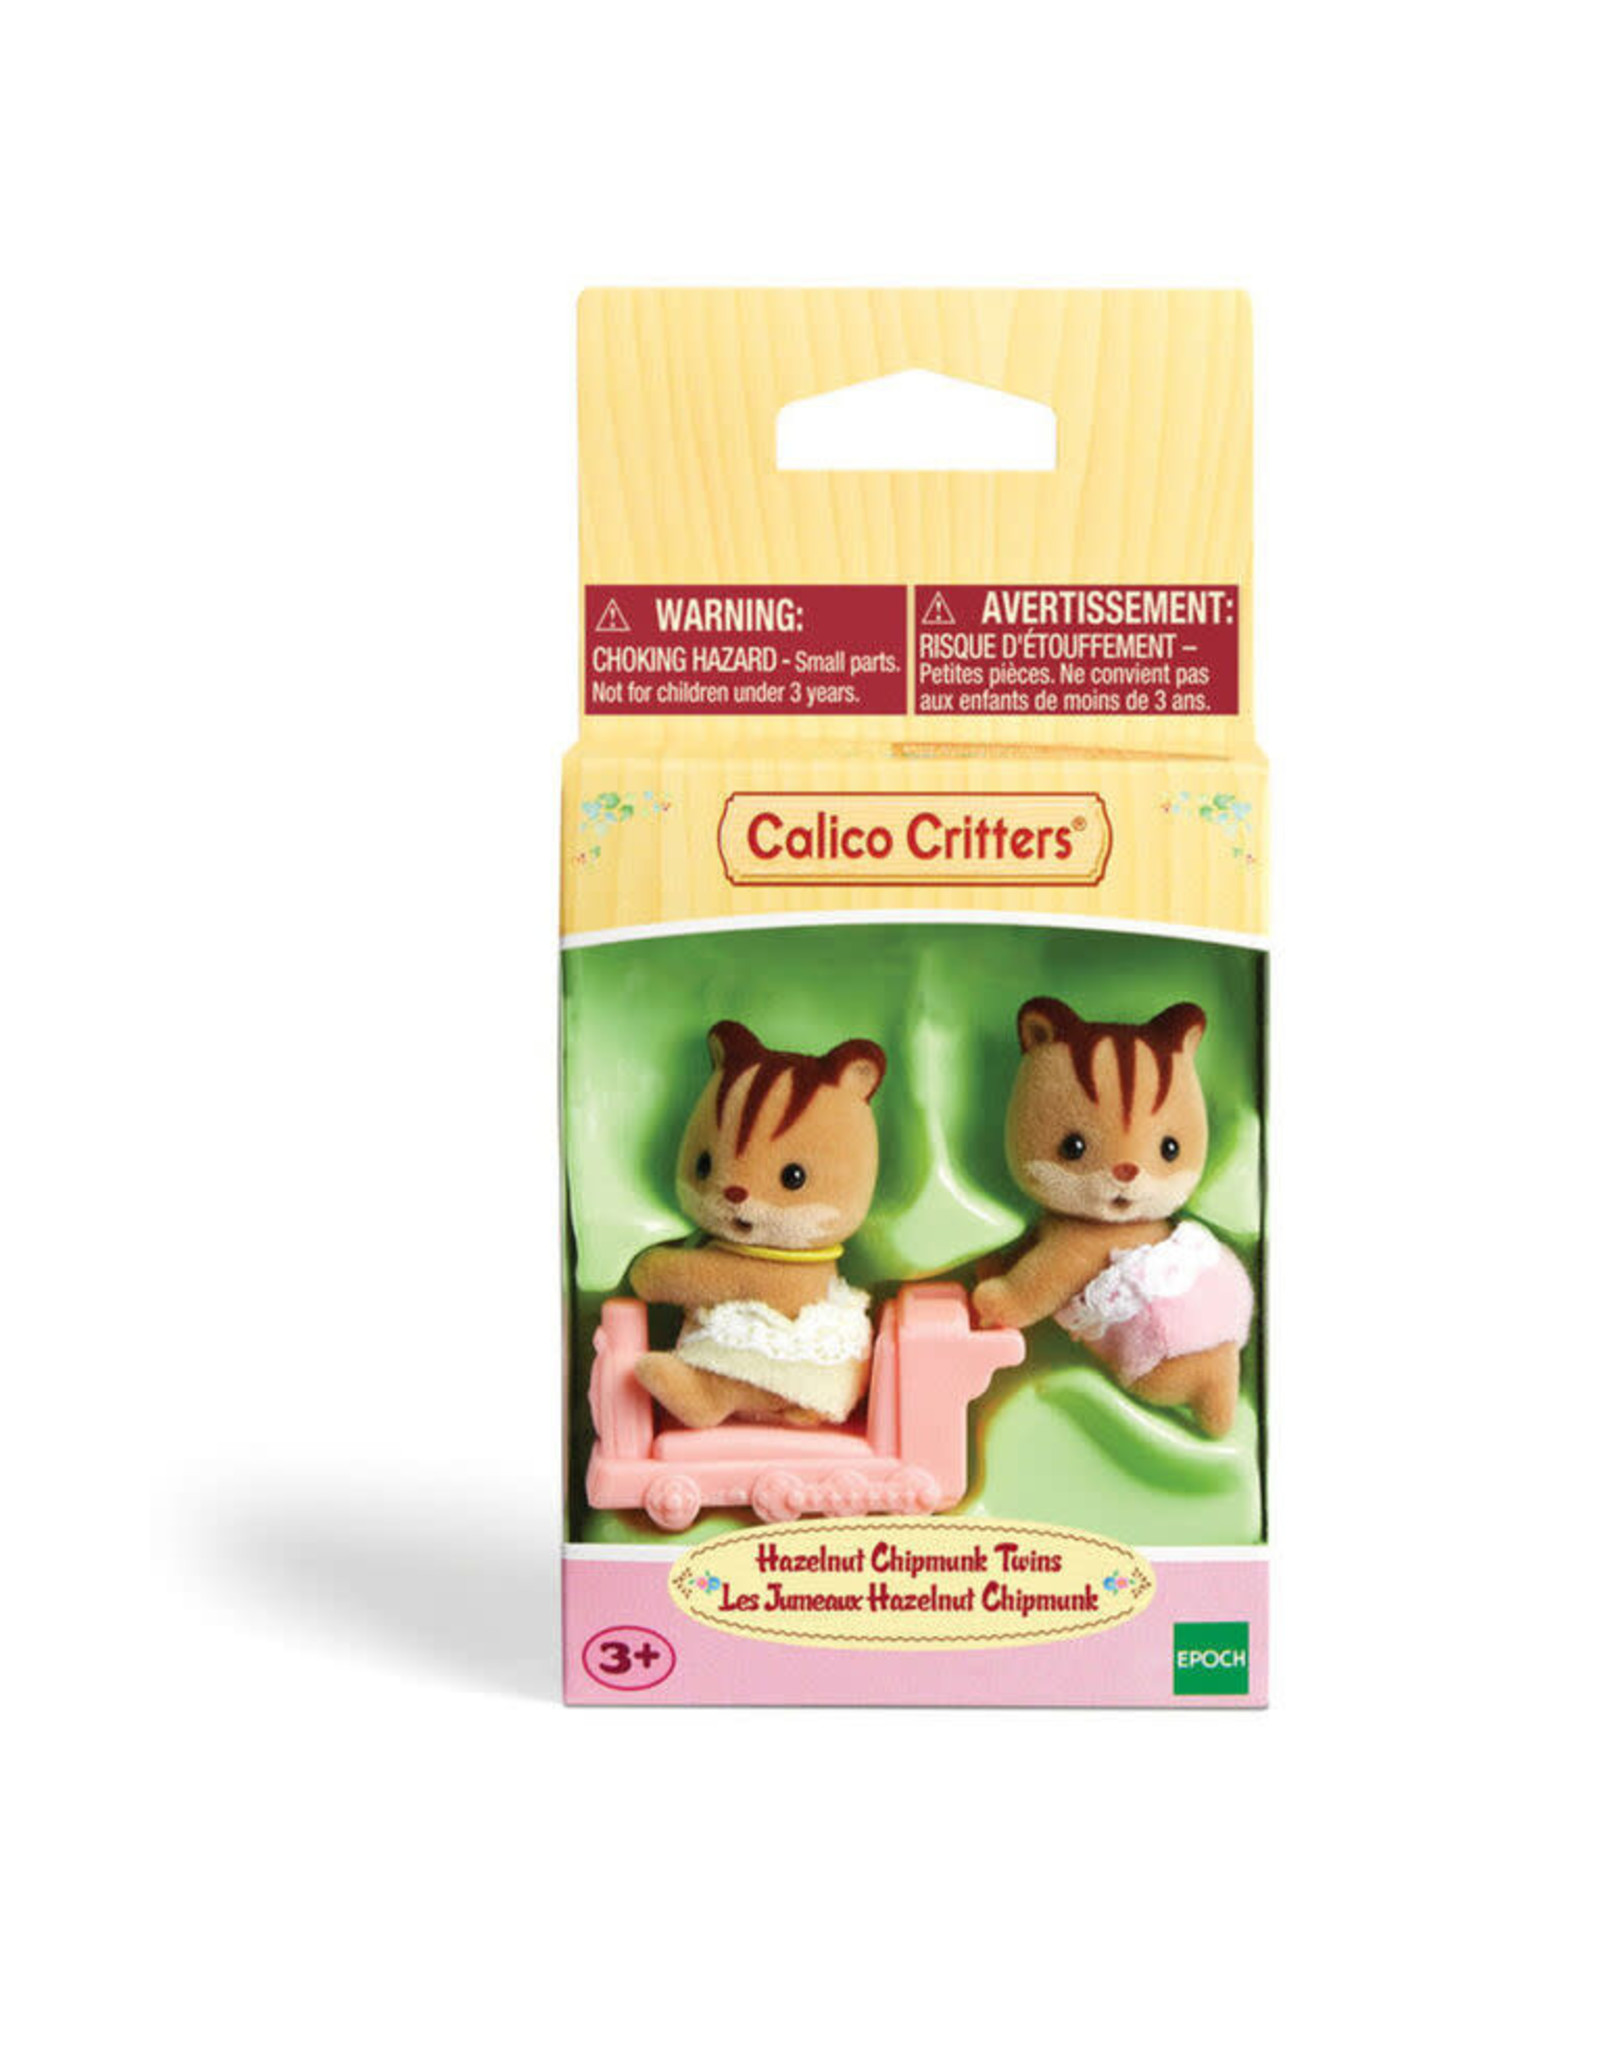 Calico Critters Calico Critters Hazelnut Chipmunk Twins